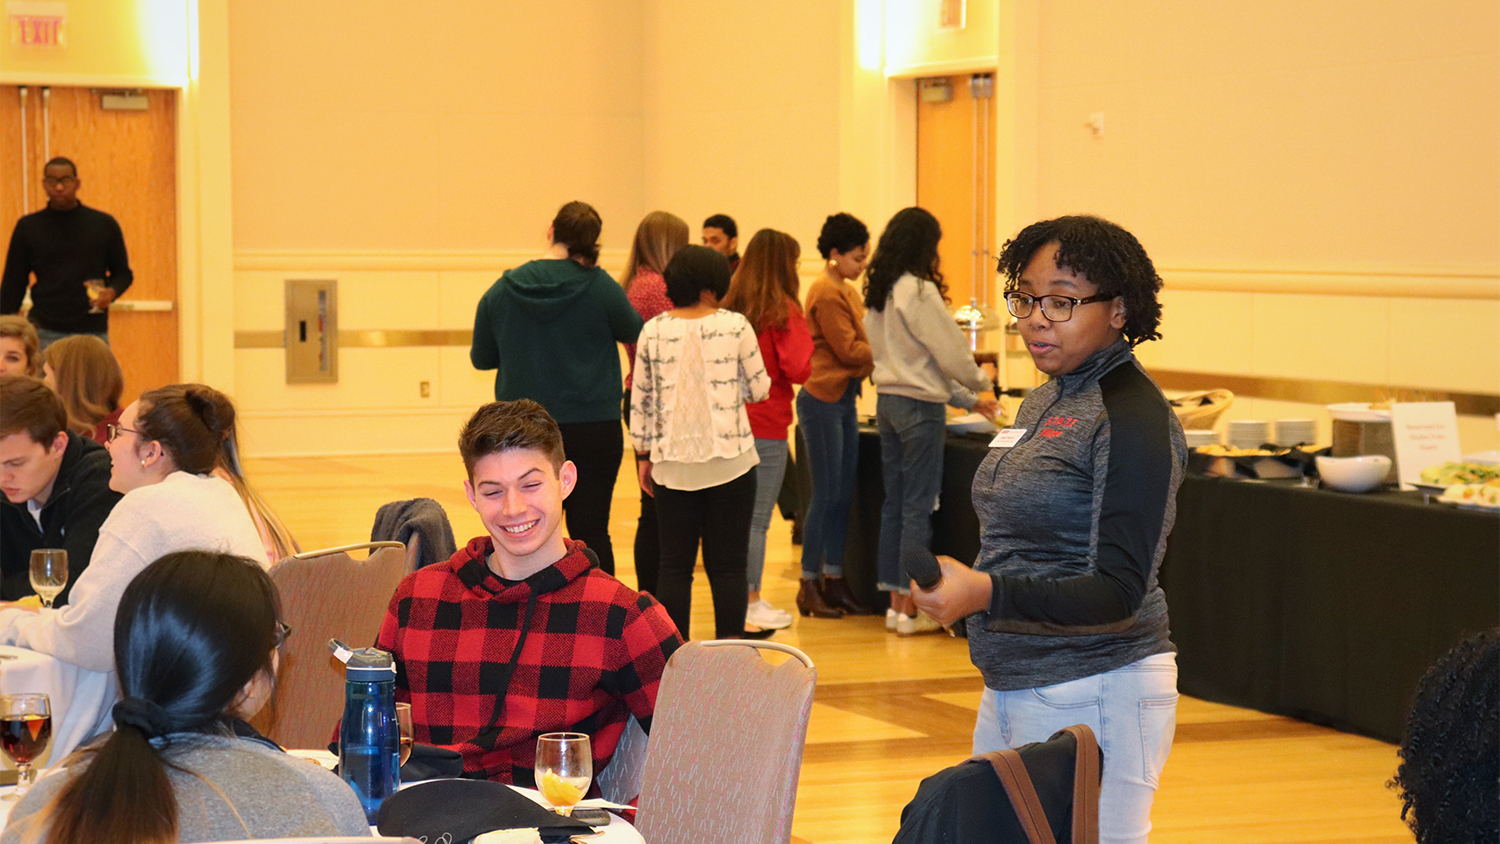 Sade Proctor speaks to students at a table during a career workshop